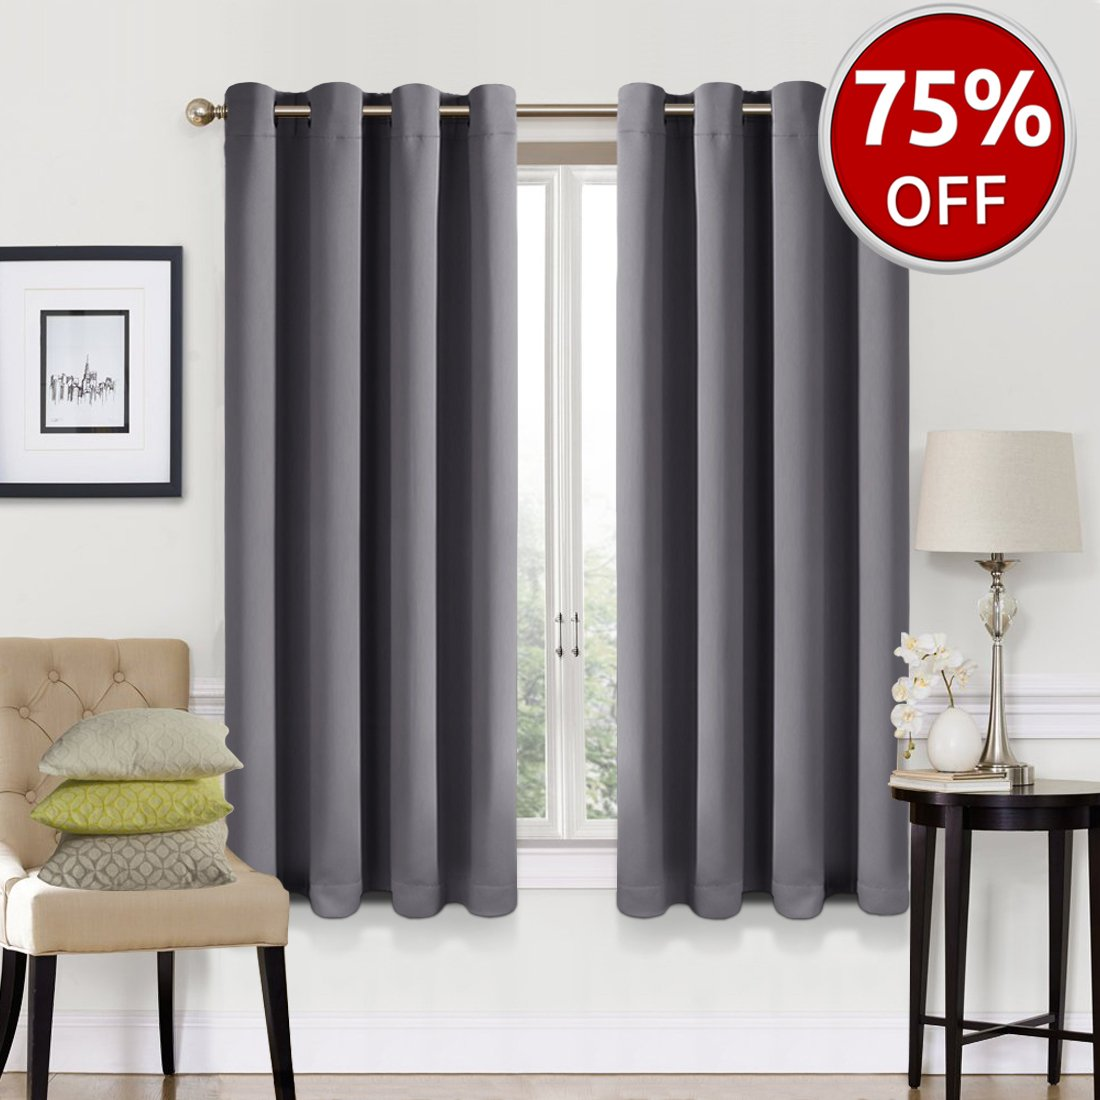 Easeland 99 blackout curtains 2 panels set✅room darkening drapes thermal insulated solid✅grommets window treatment pair for bedroom nursery